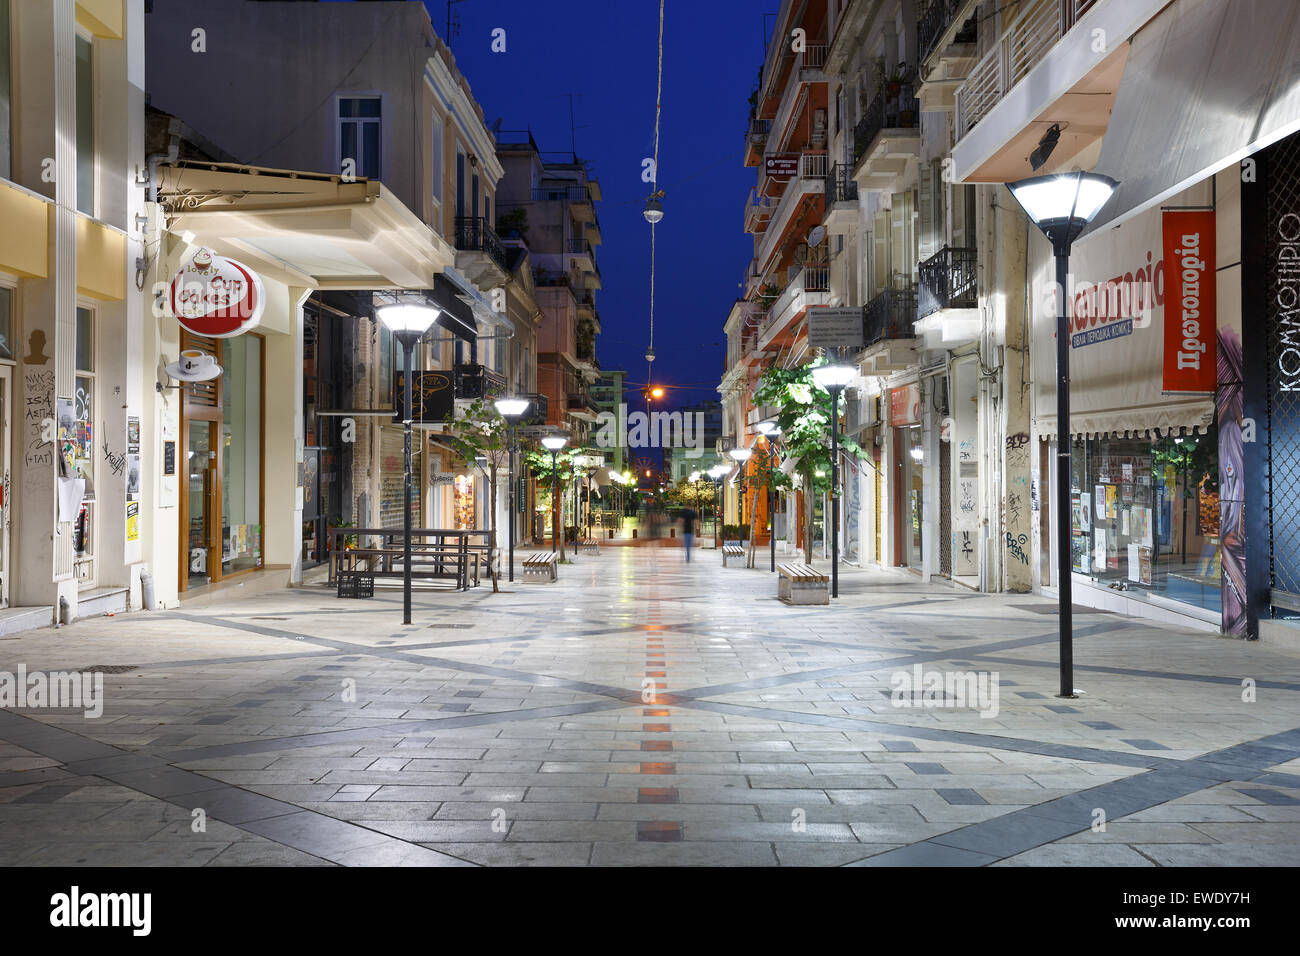 One of the streets in the city centre of Patras, Greece - Stock Image